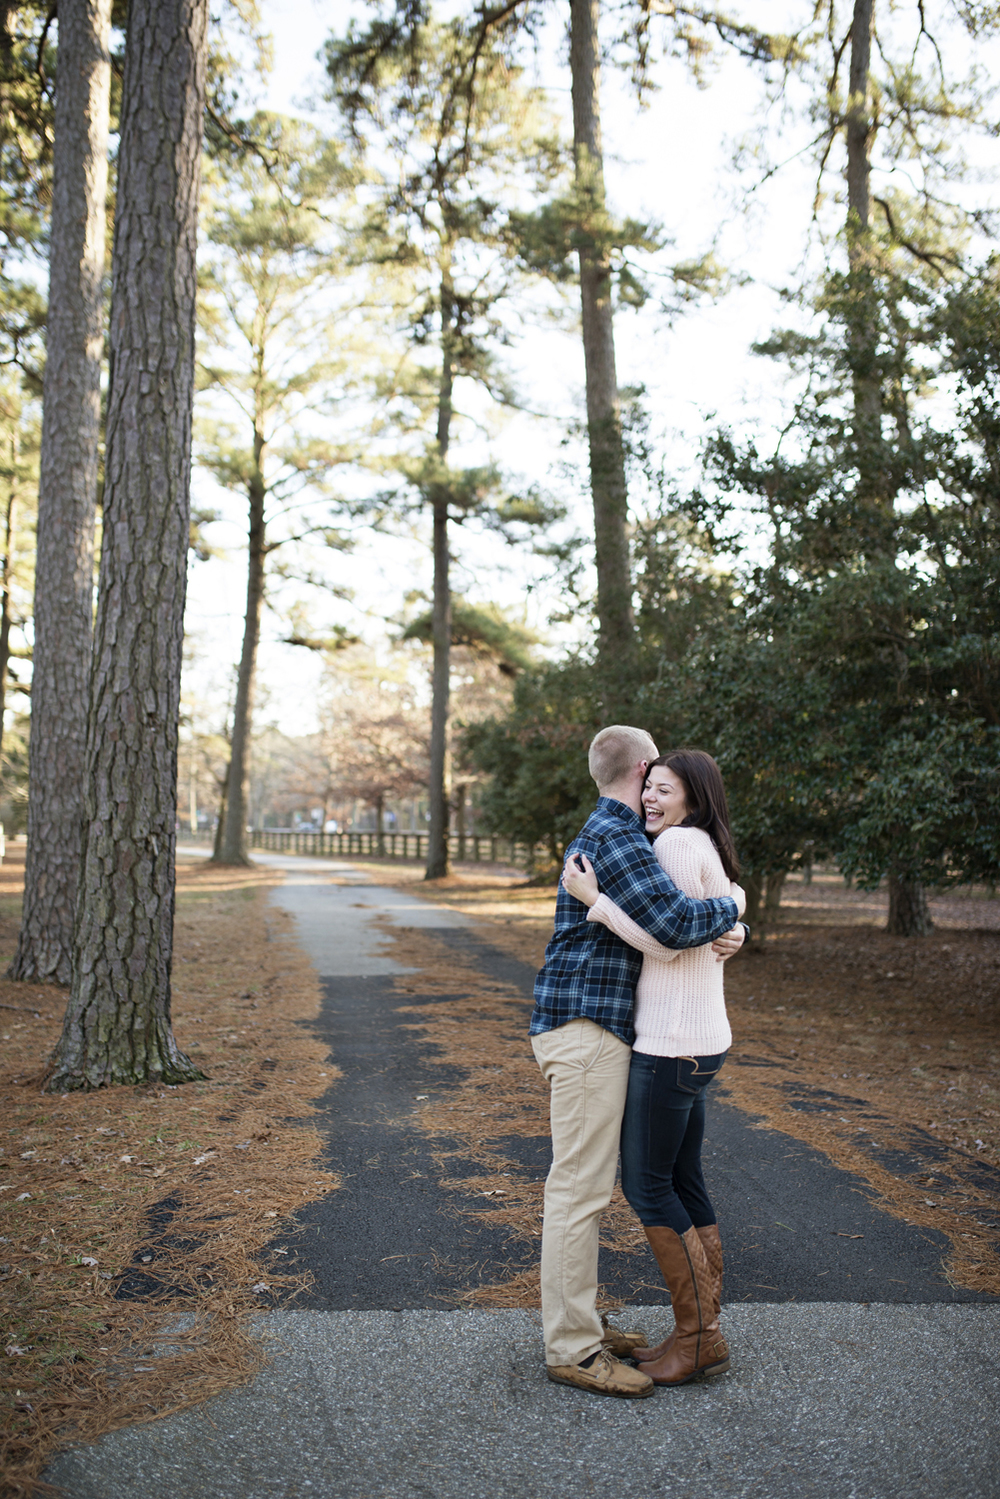 Engagement session in the woods with tall trees